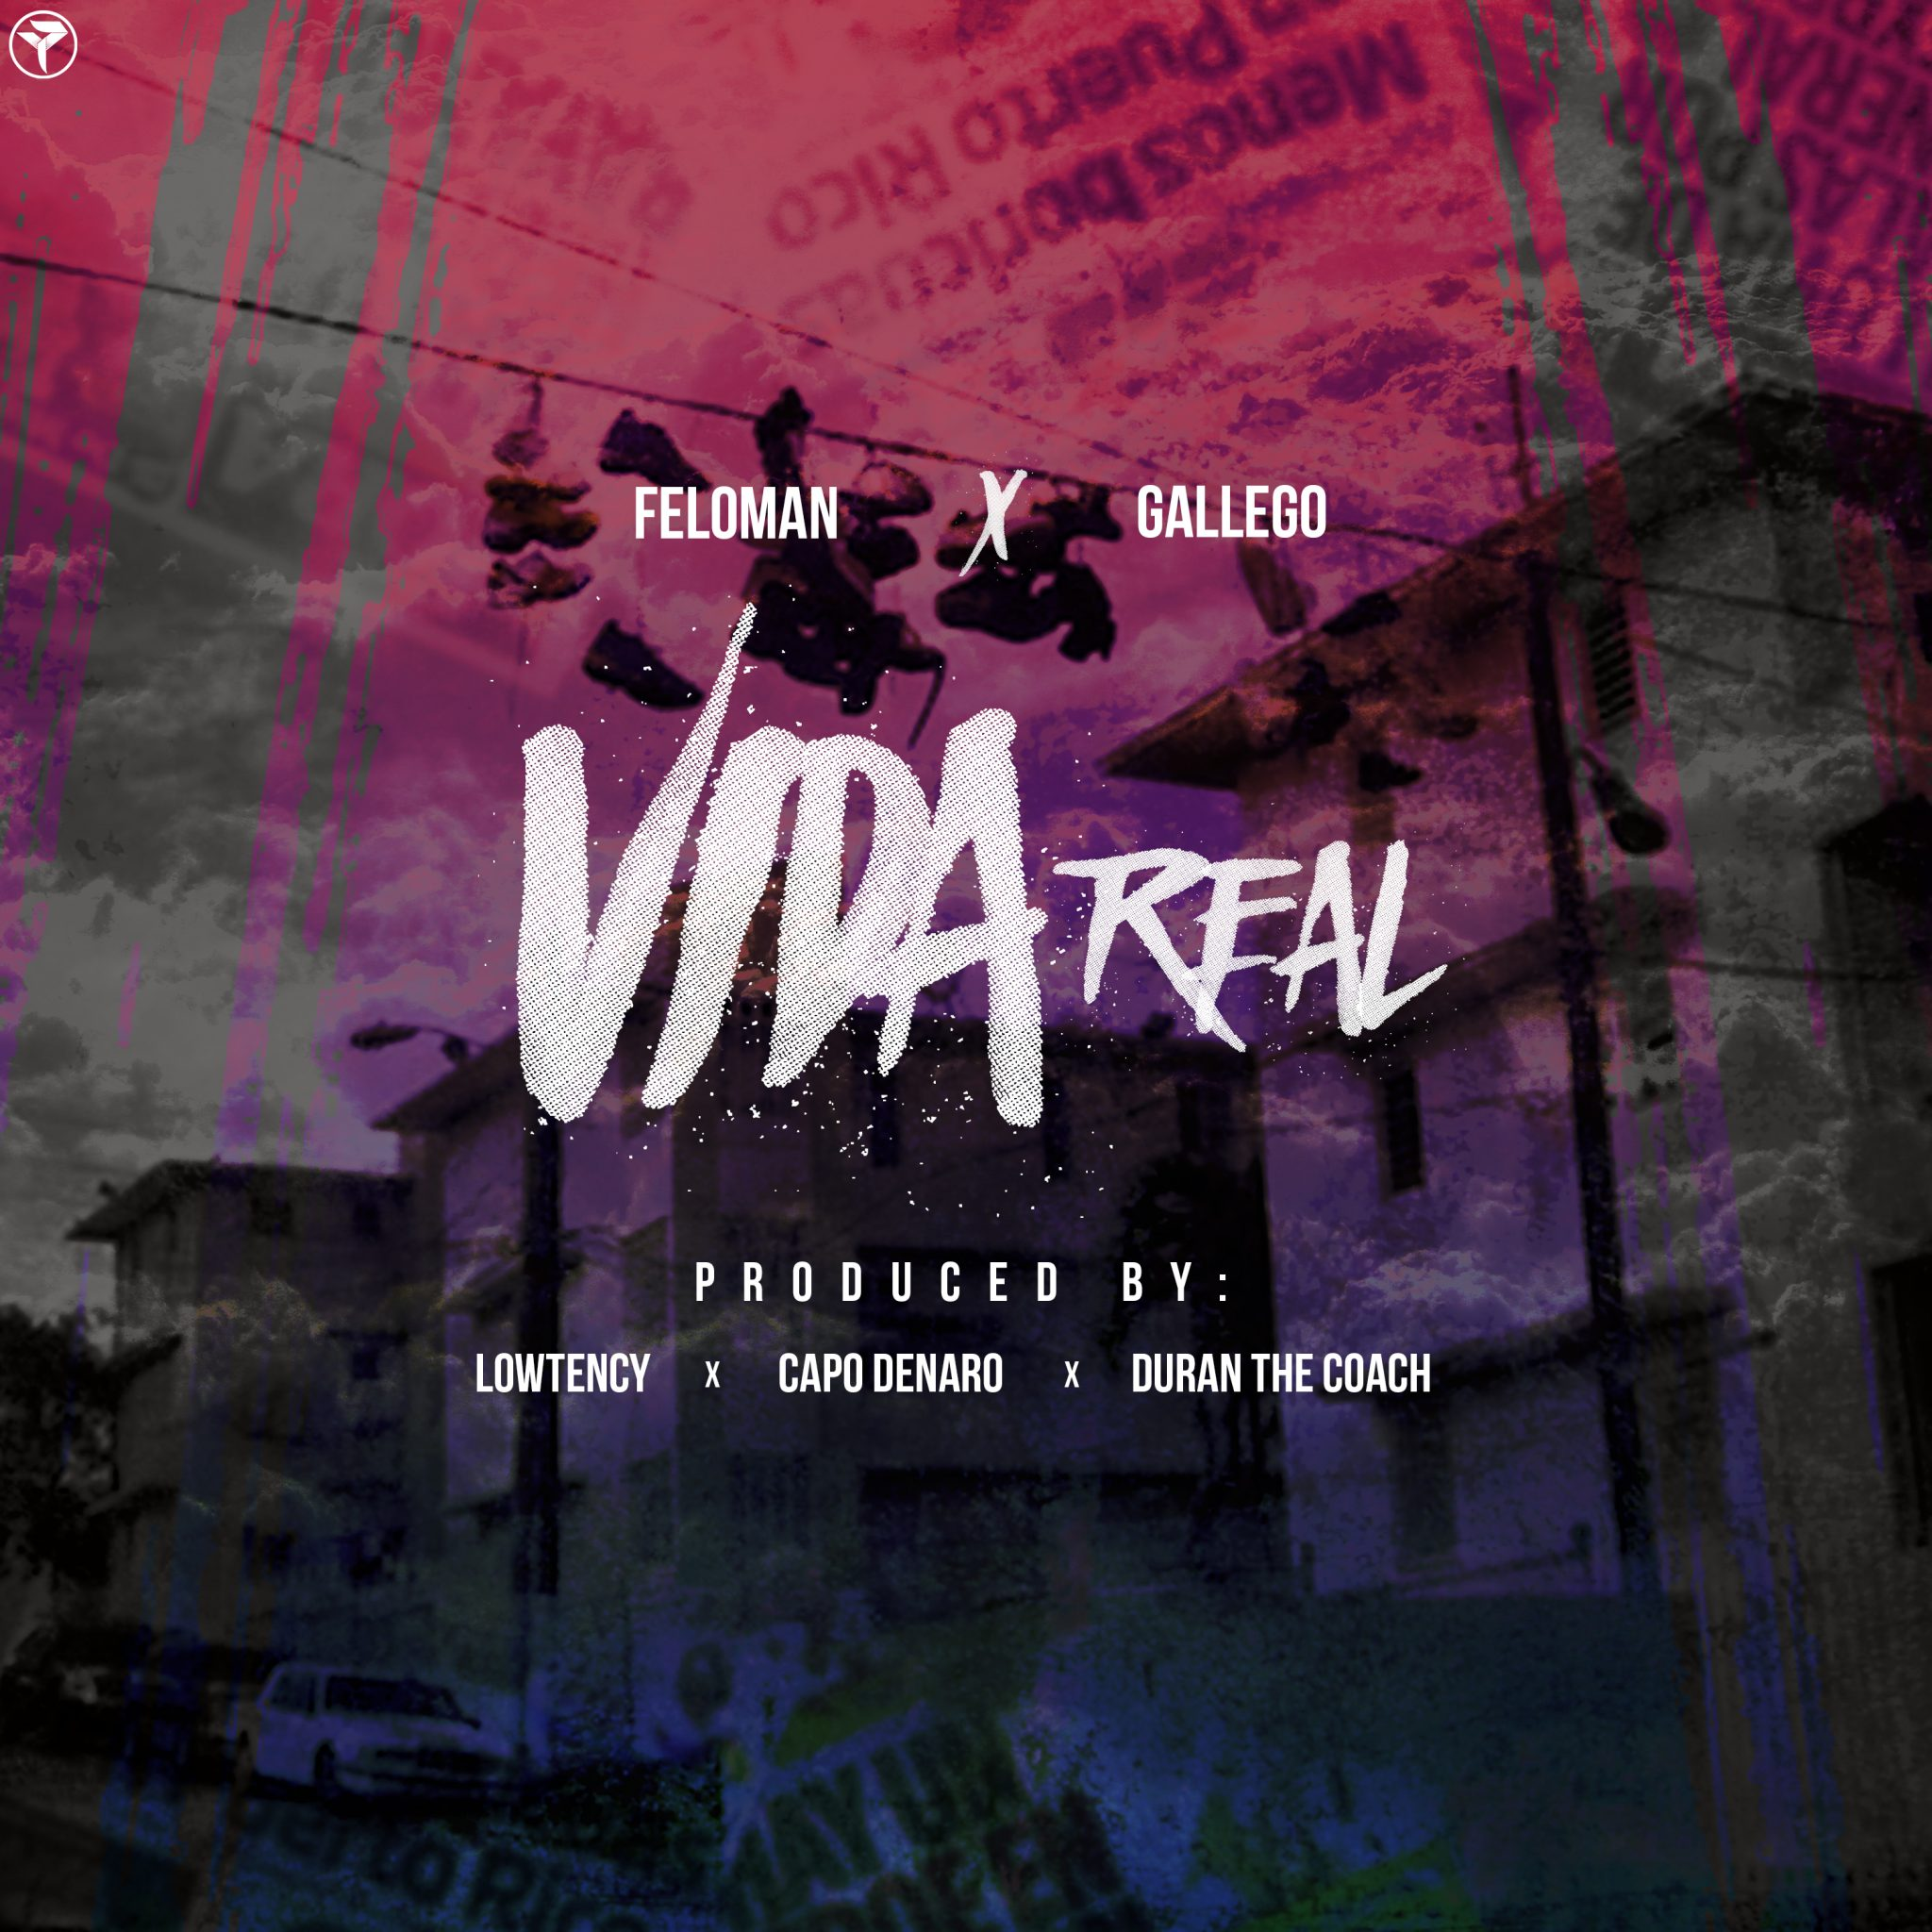 vida - Feloman Ft. Gallego – Vida Real